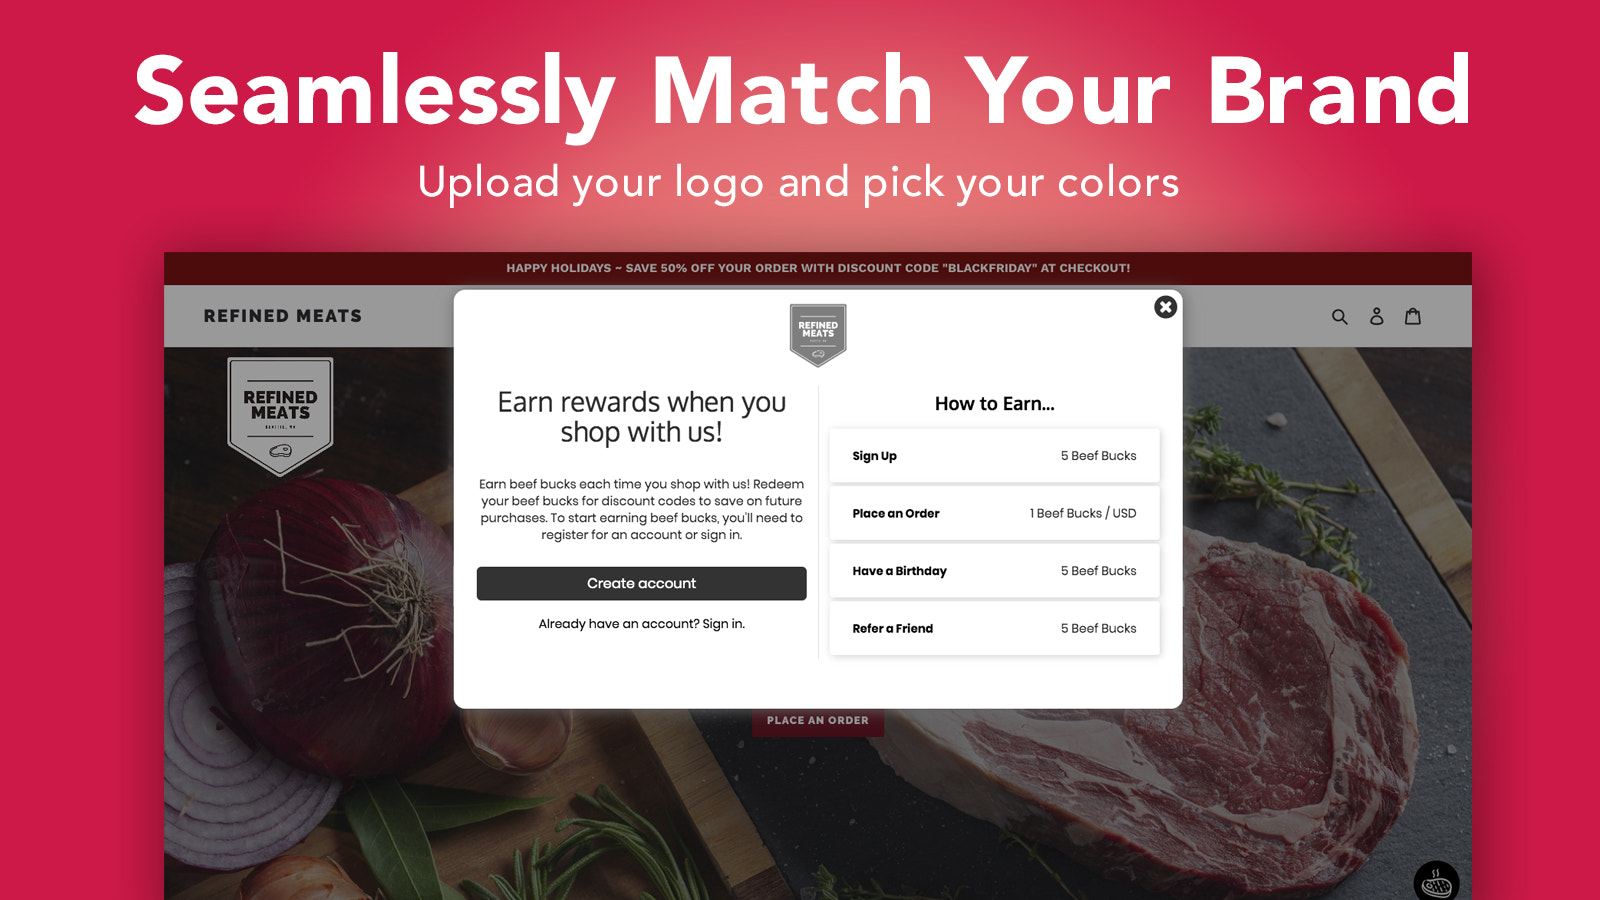 Seamlessly match your brand